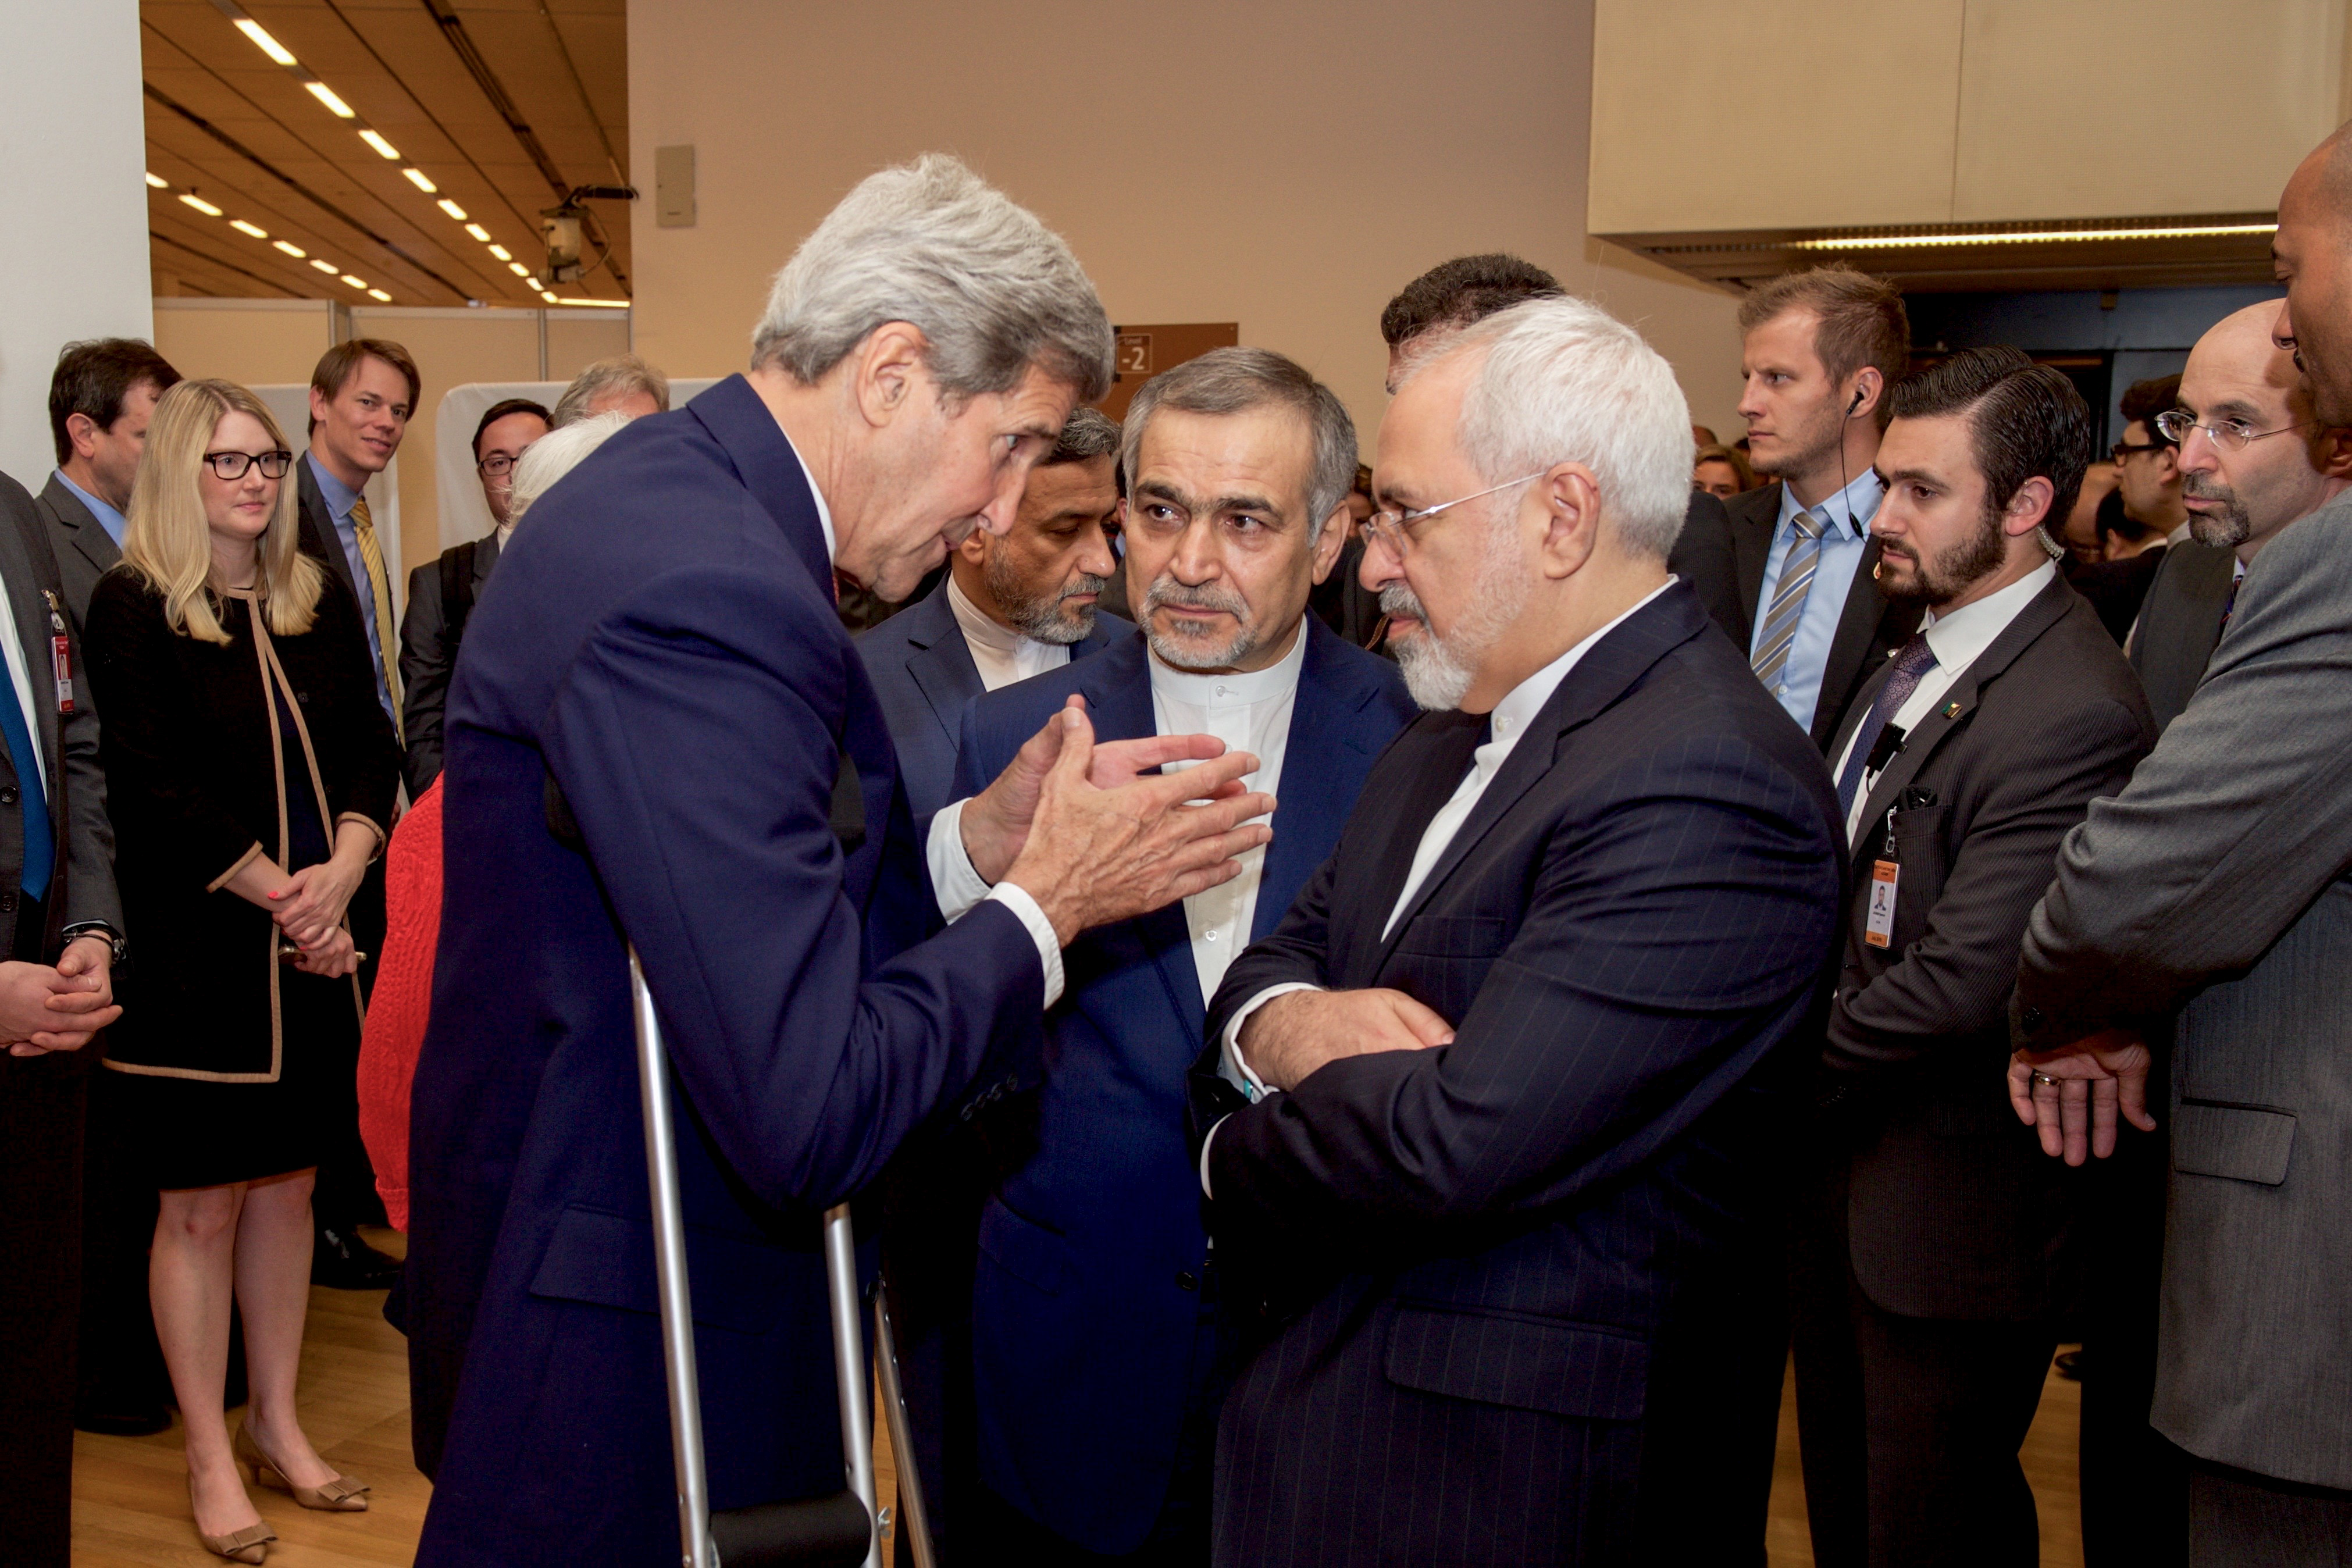 John Kerry speaks with Hossein Fereydoun and Iranian Foreign Minister Javad Zarif before the Secretary and Foreign Minister addressed an international press corps gathered at the Austria Center in Vienna